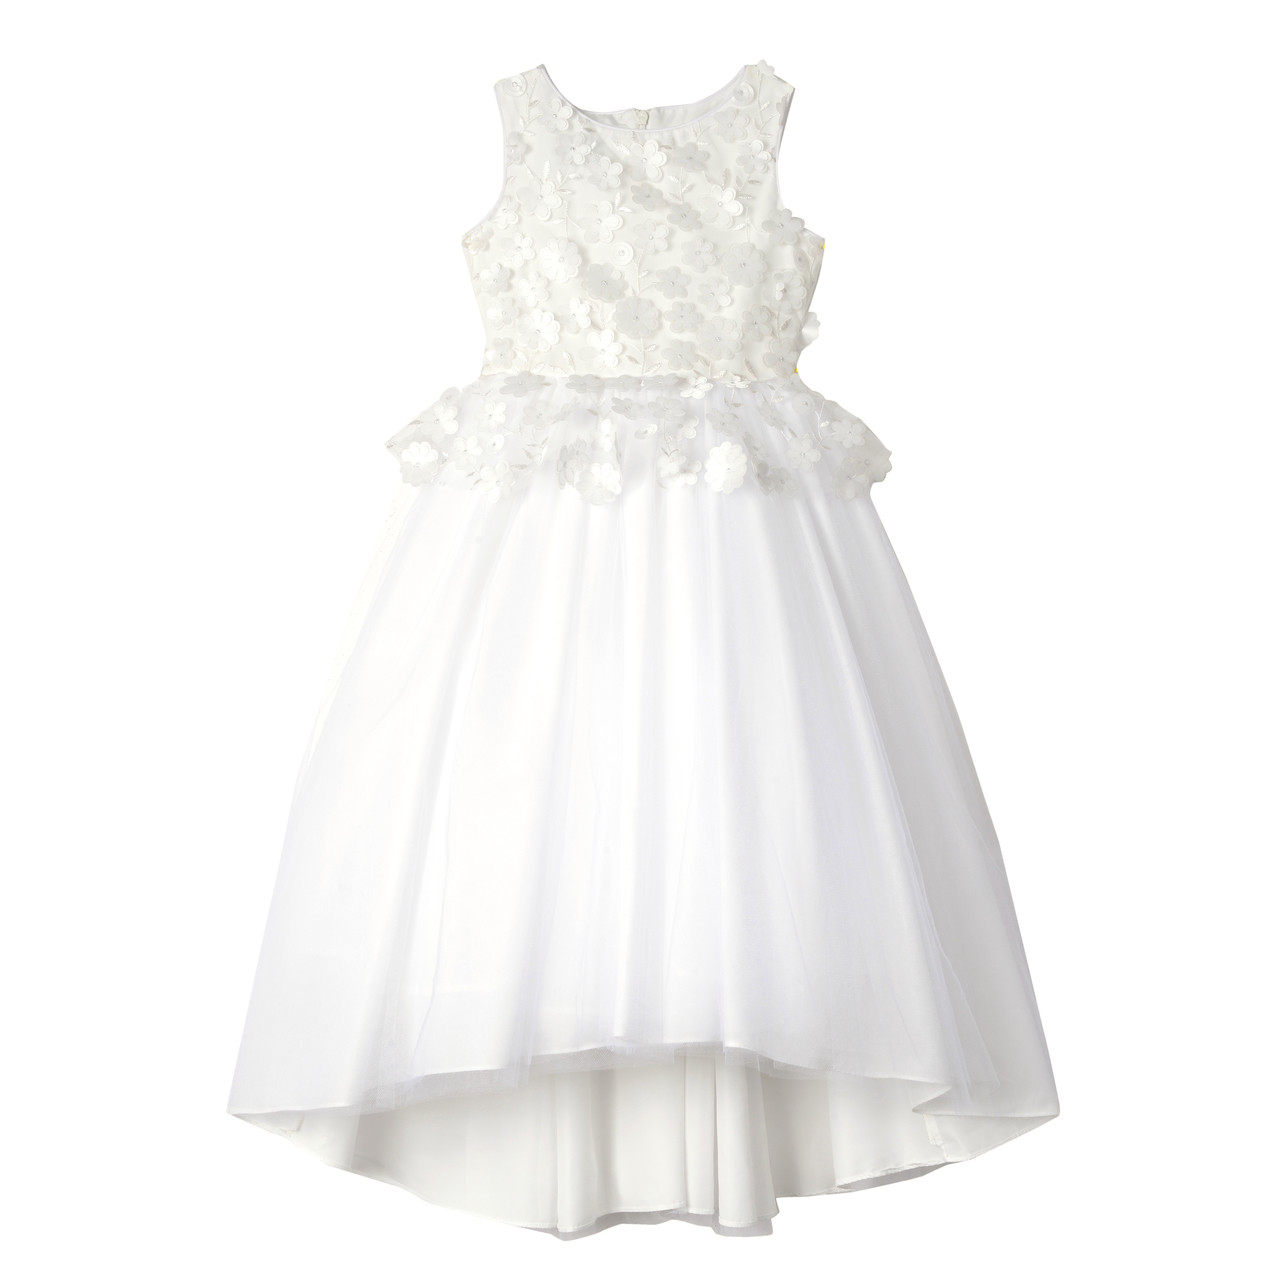 2d20b68c8cf White 3D Floral Bodice Peplum Tulle Hi-Lo Maxi Dress with Bow Sash in Back